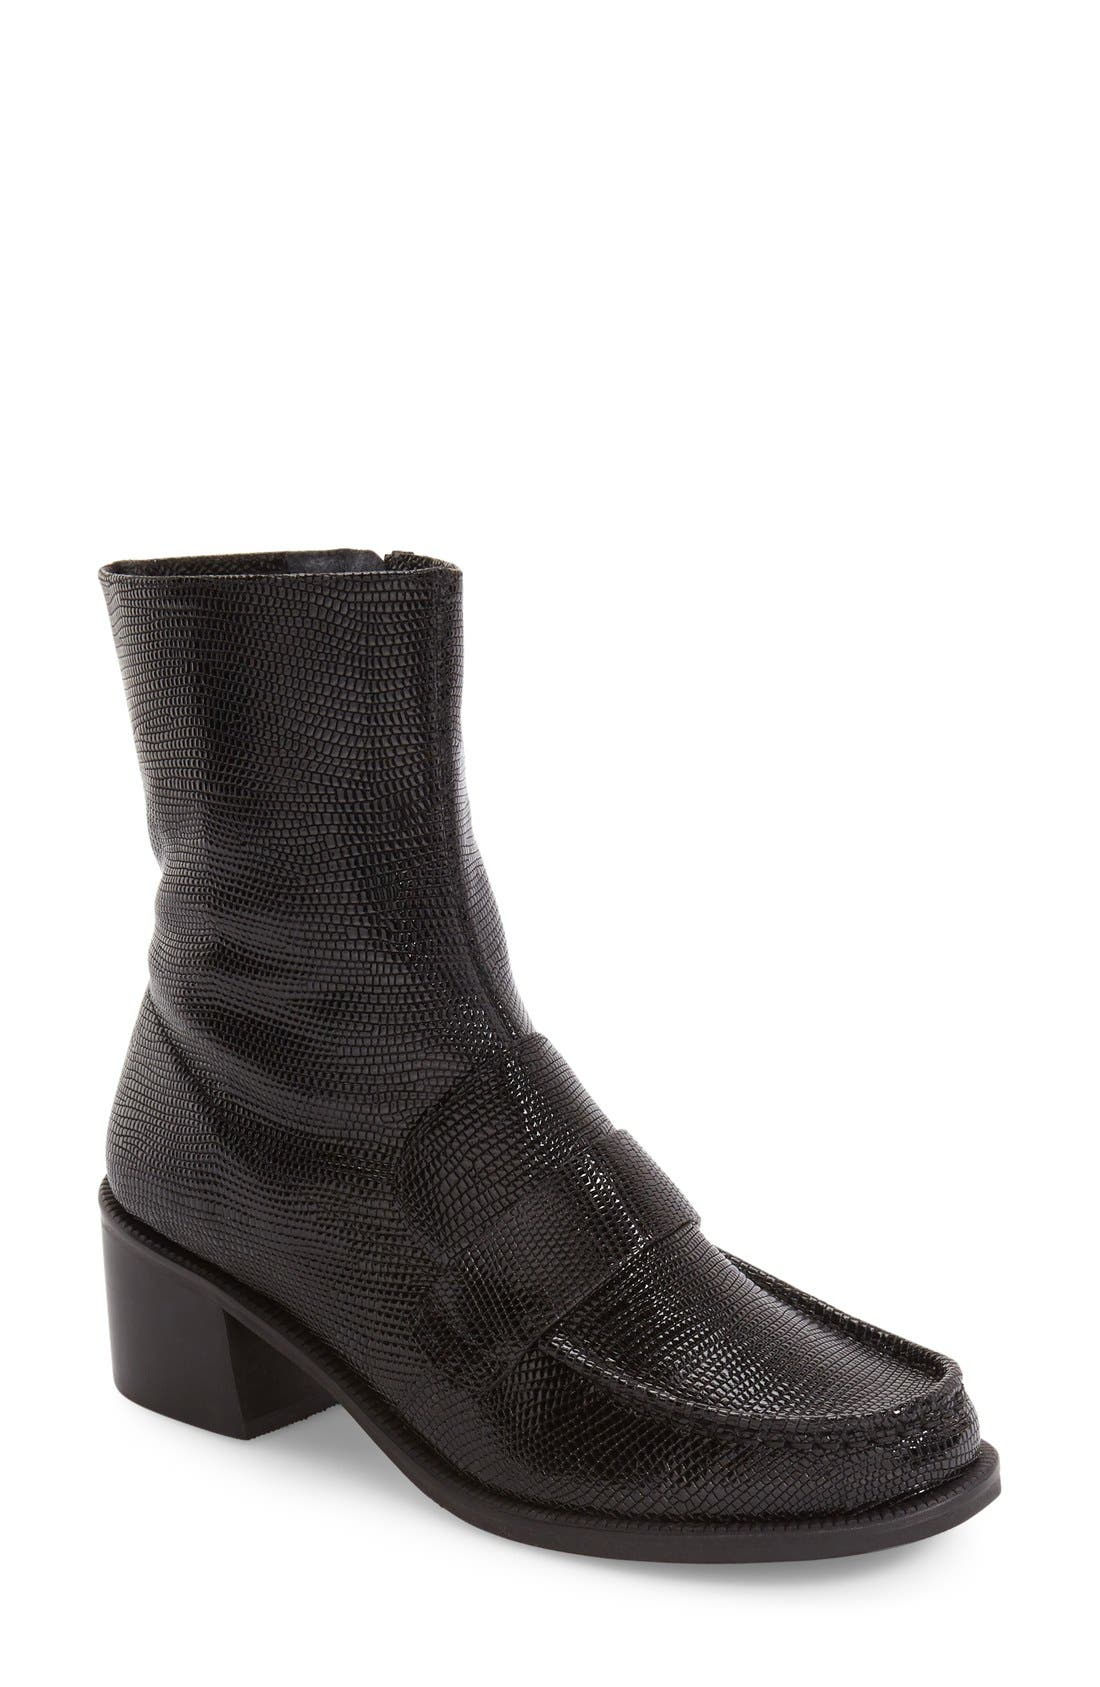 TOPSHOP Loafer Bootie, Main, color, 001